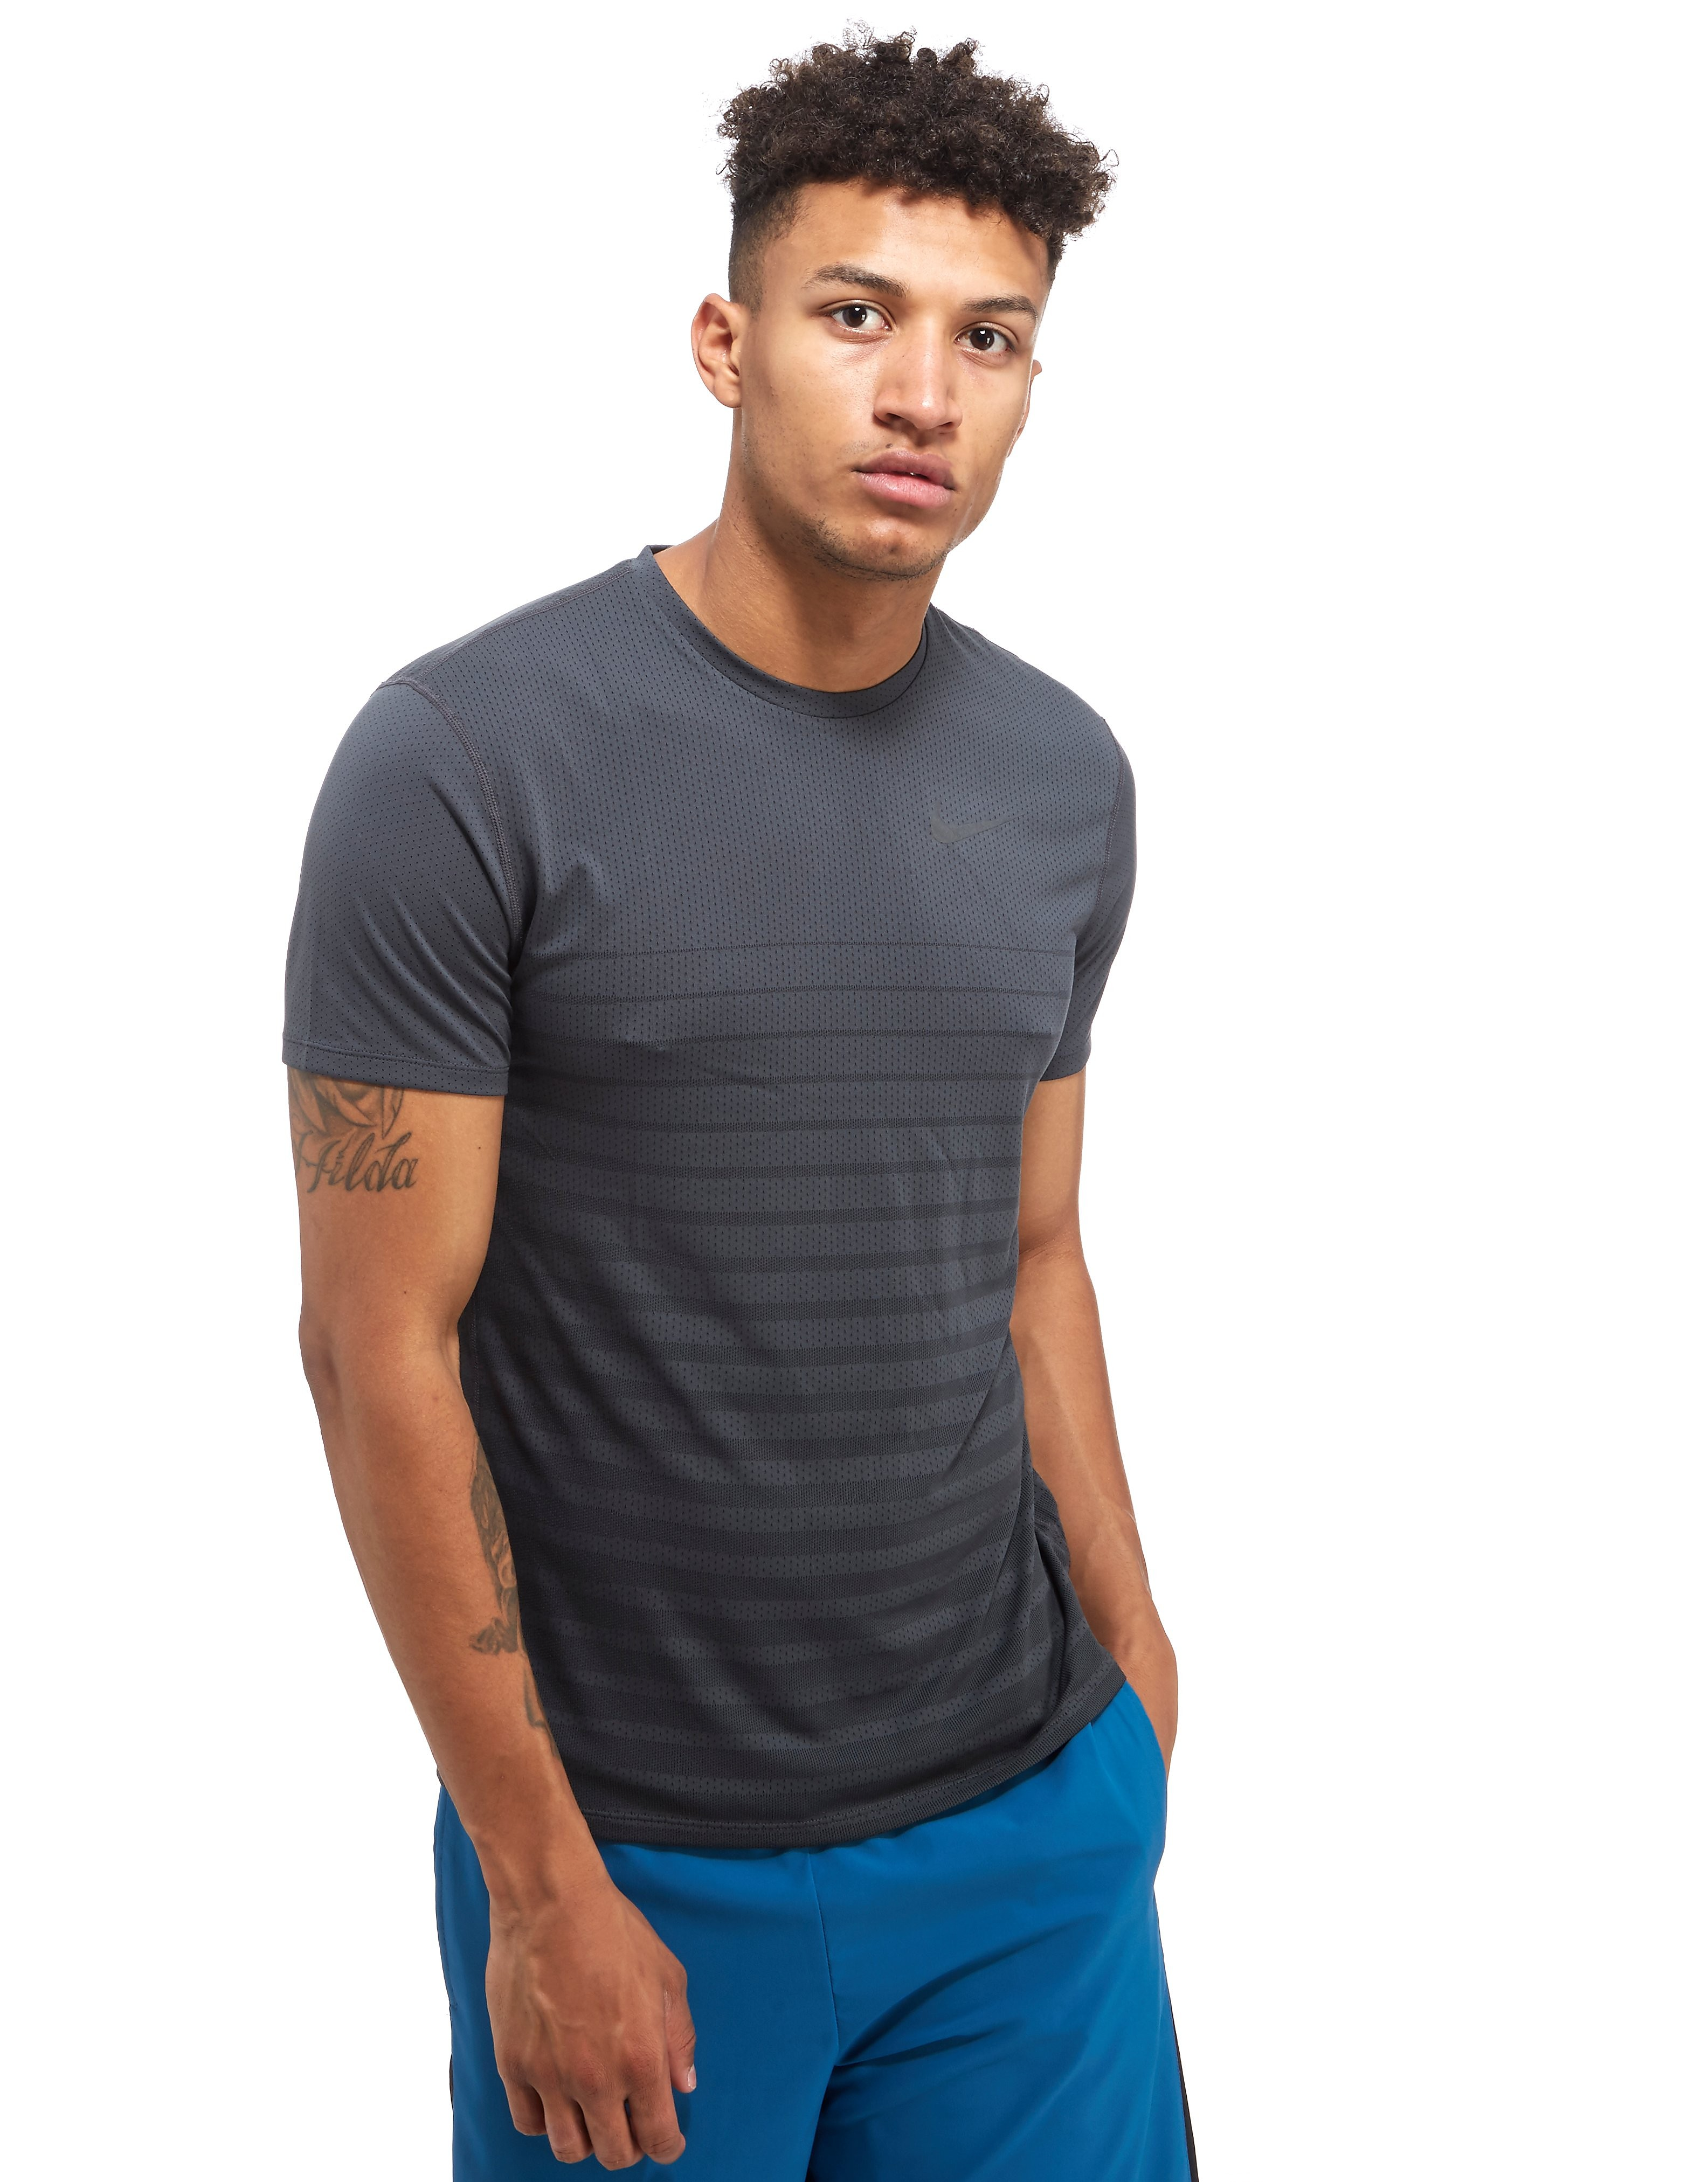 Nike T-shirt Zonal Cooling Relay Homme